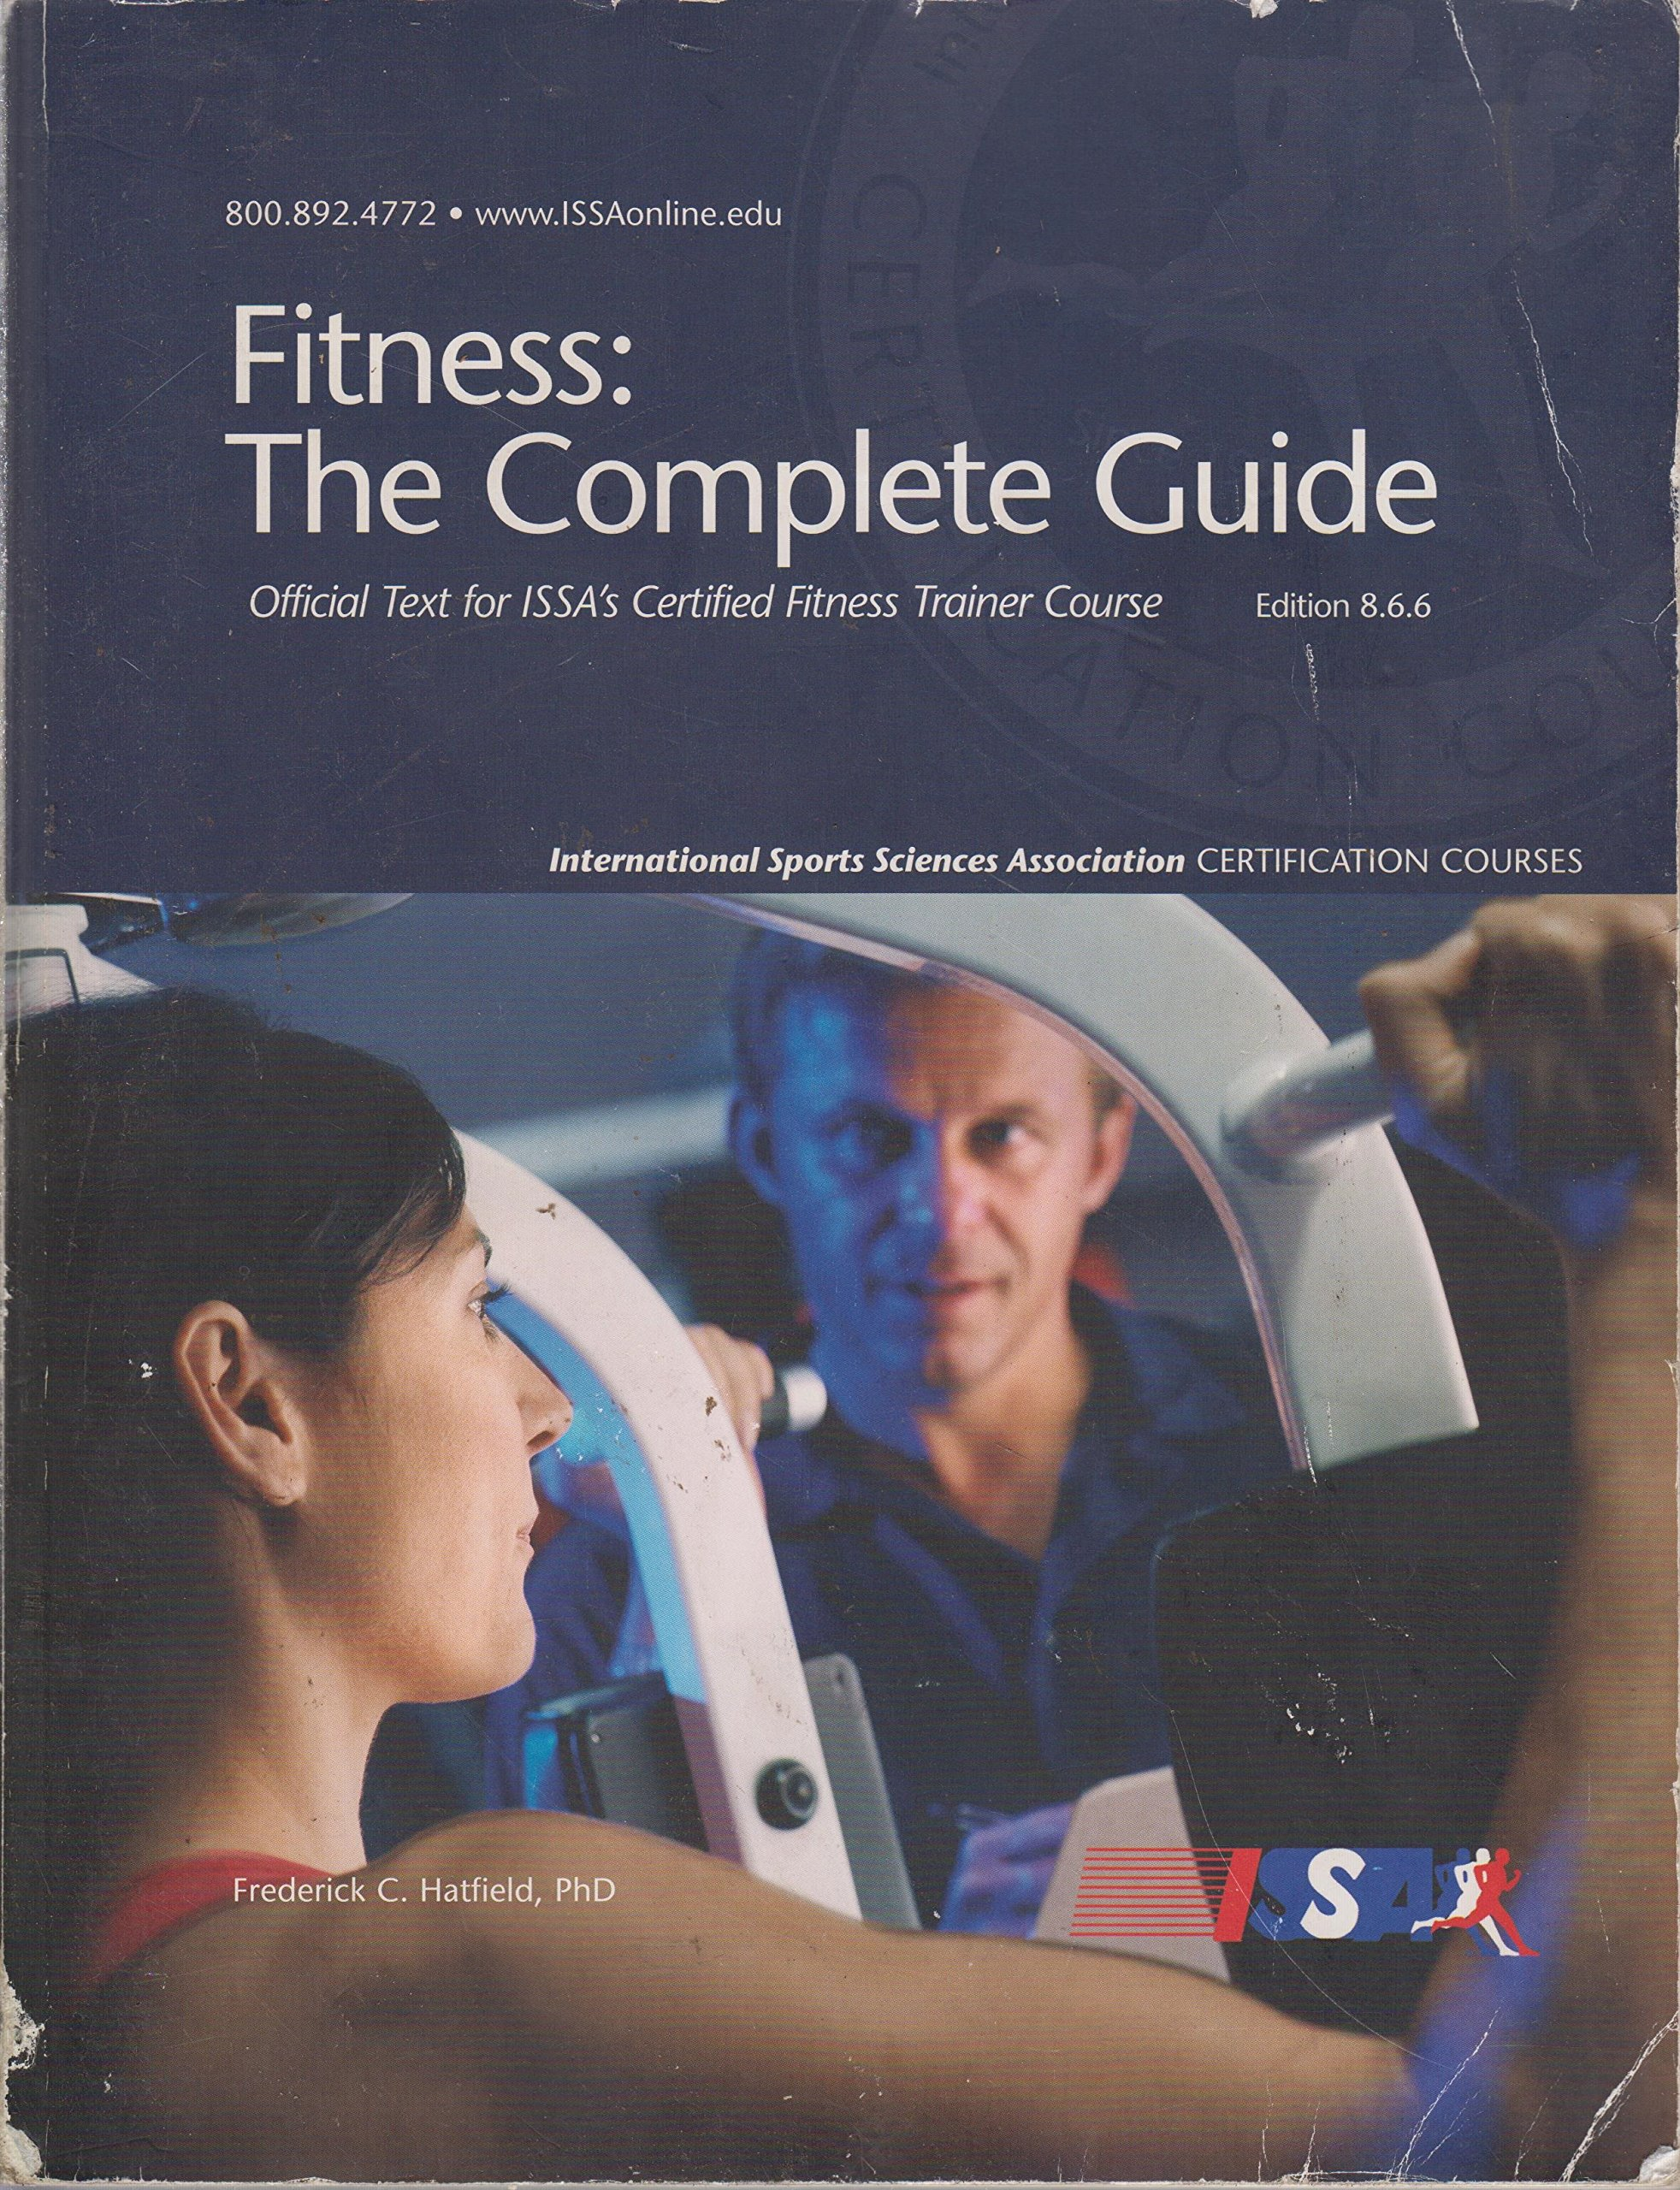 254ebc797b0 Fitness  The Complete Guide Official Text for ISSA s Certified Fitness  Trainer Course (Edition 8.6.6.) Paperback – 2011